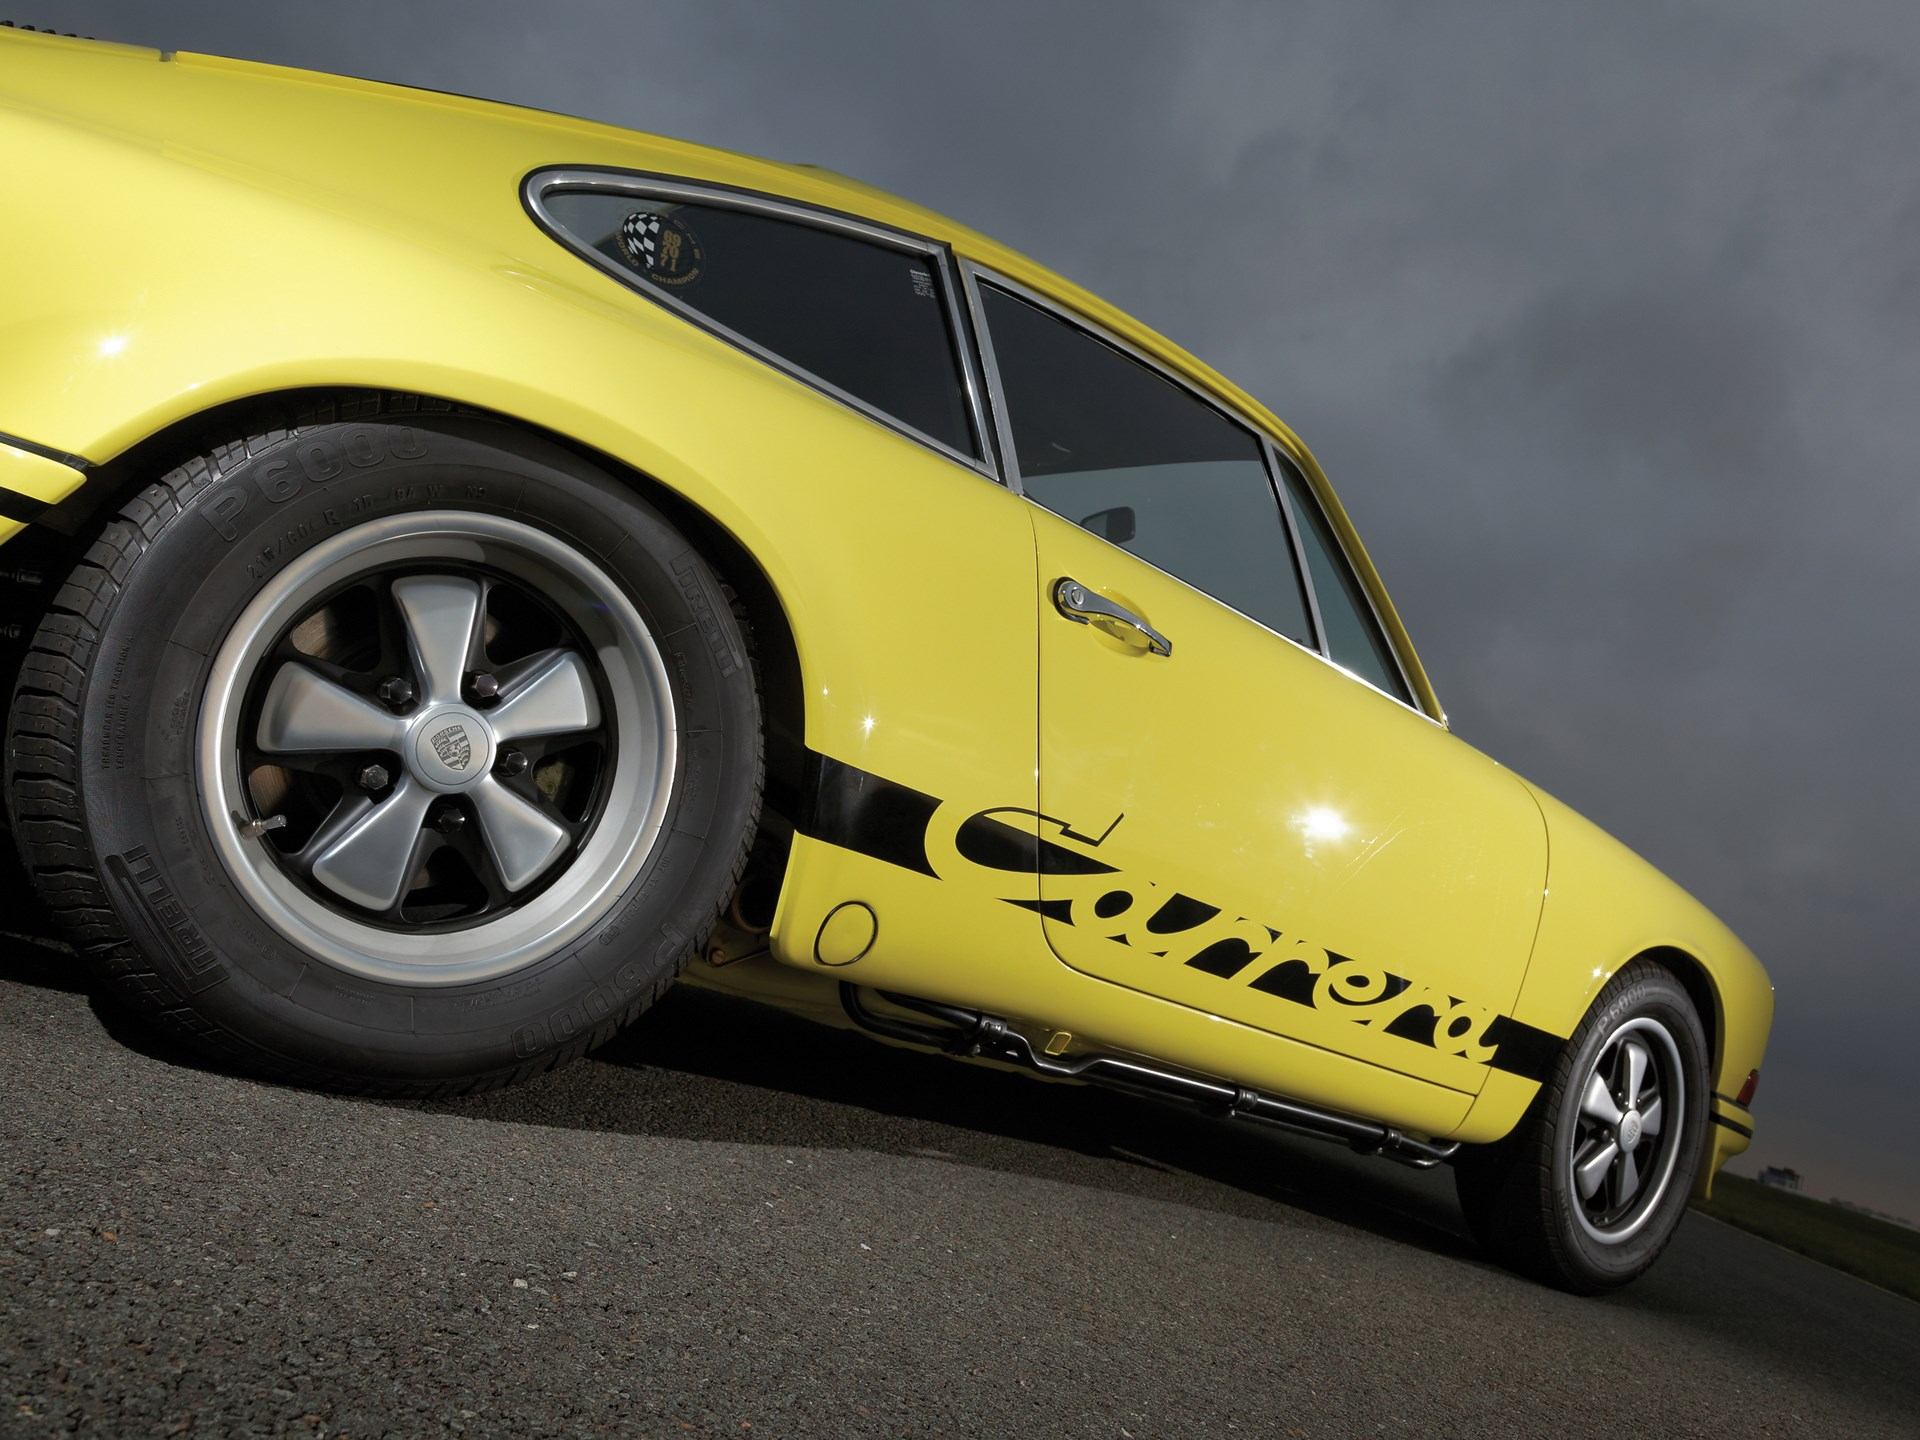 1973 Porsche 911 Carrera RS 2.7 Sports Lightweight